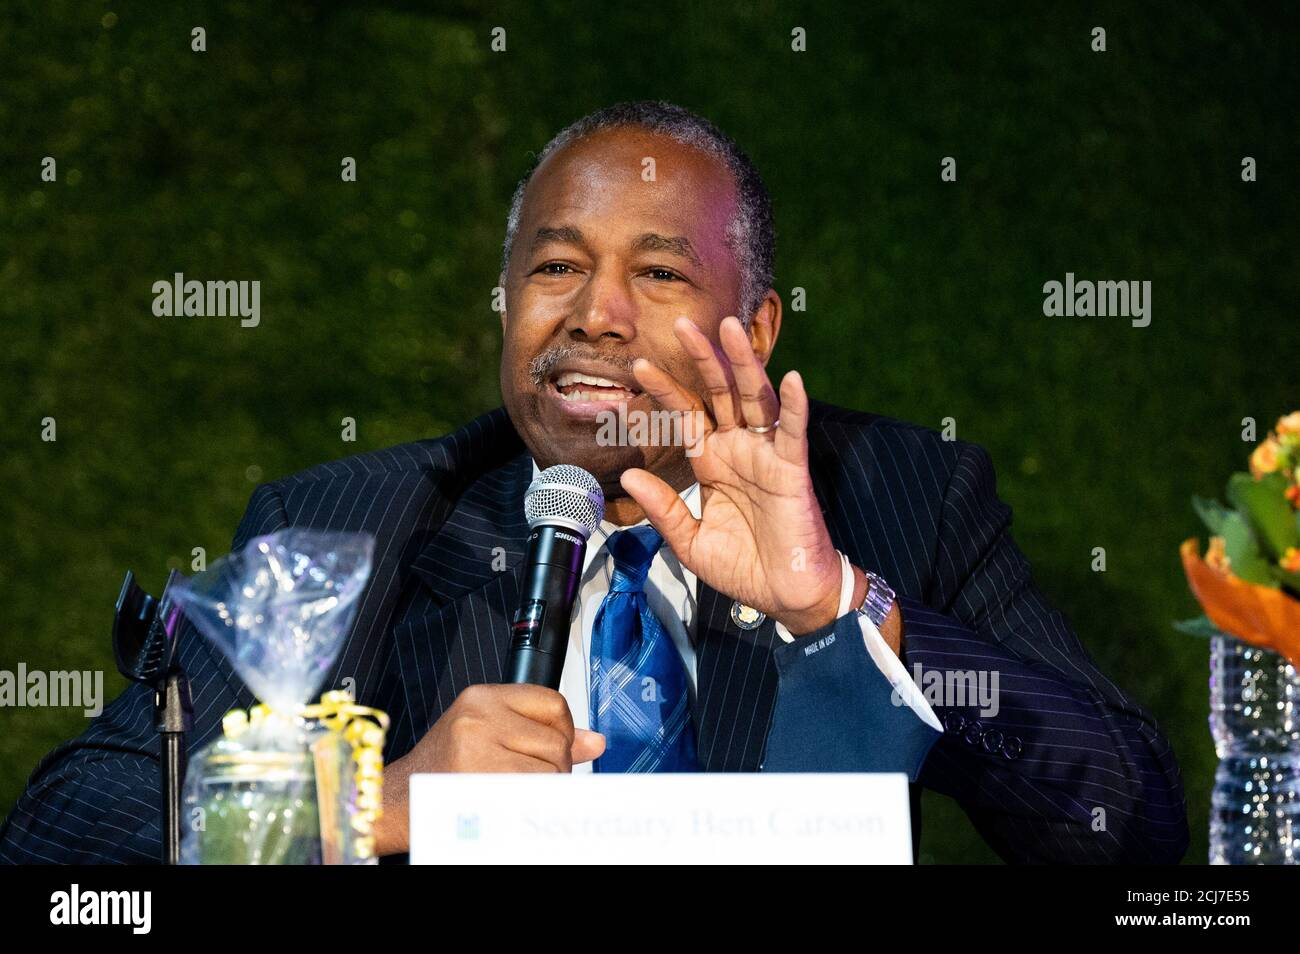 Wilmington, United States. 14th Sep, 2020. U.S. Housing and Urban Development (HUD) Secretary Ben Carson speaks after being given a tour around the plants growing in an indoor hydroponic chemical- and pesticide-free vertical farm at Second Chances Farms. Credit: SOPA Images Limited/Alamy Live News Stock Photo